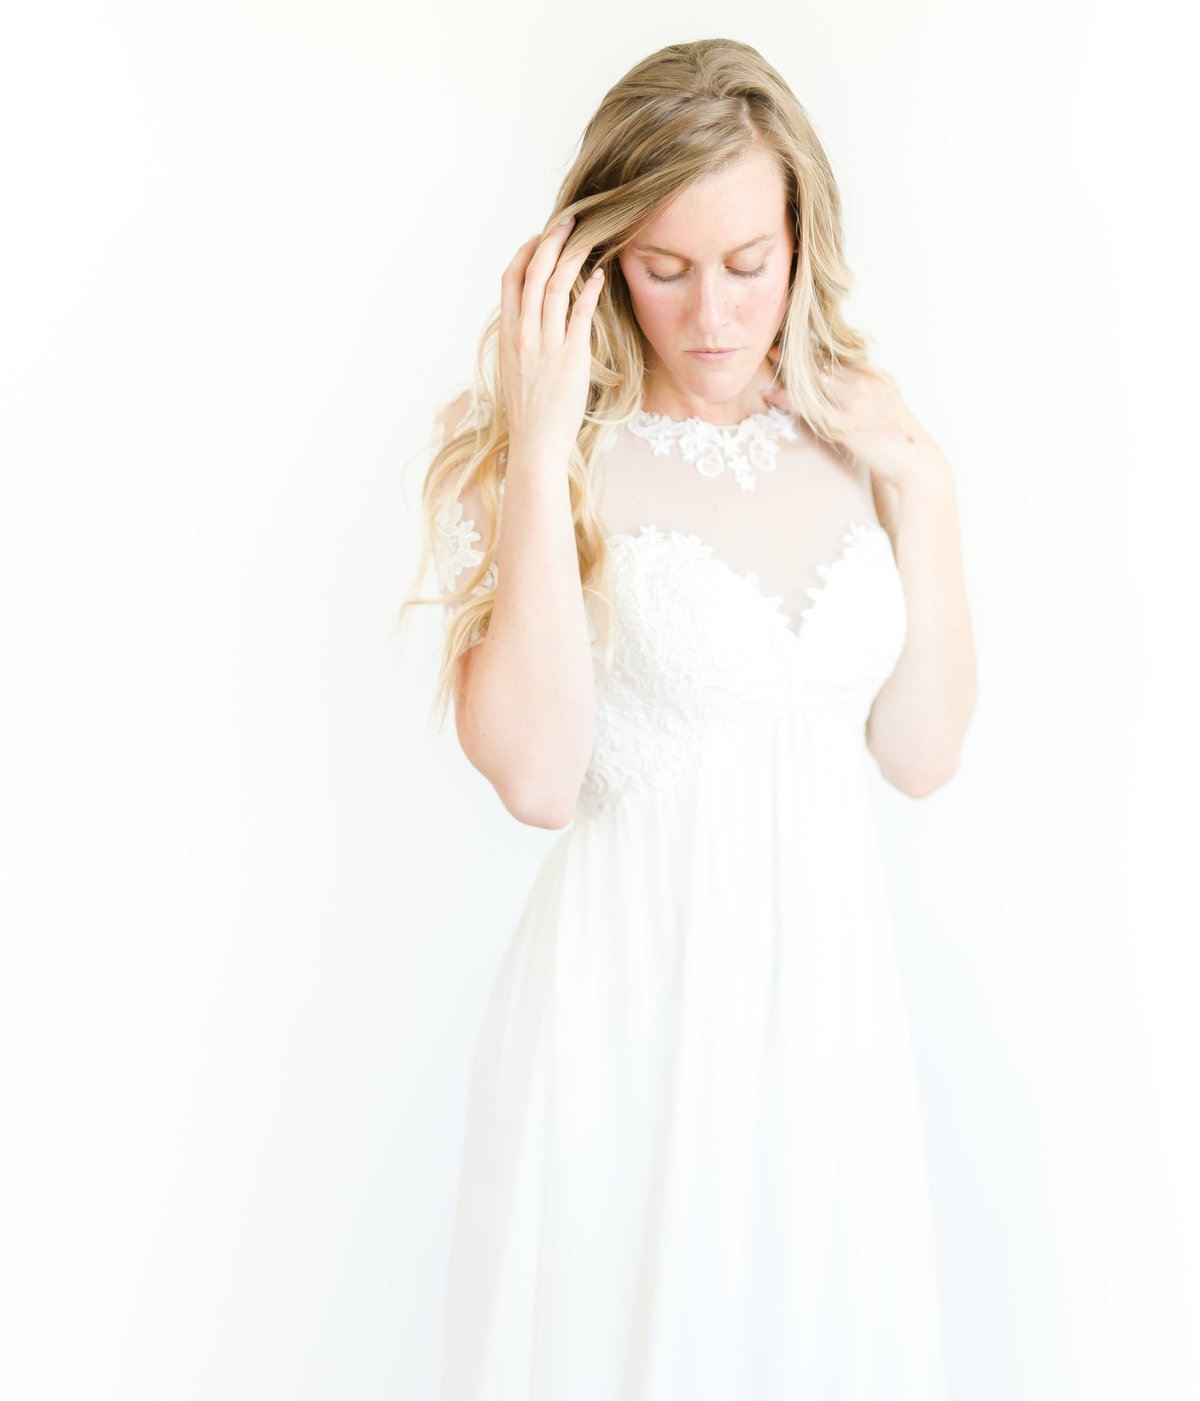 Kailey - Styled Shoot - New Edits-132